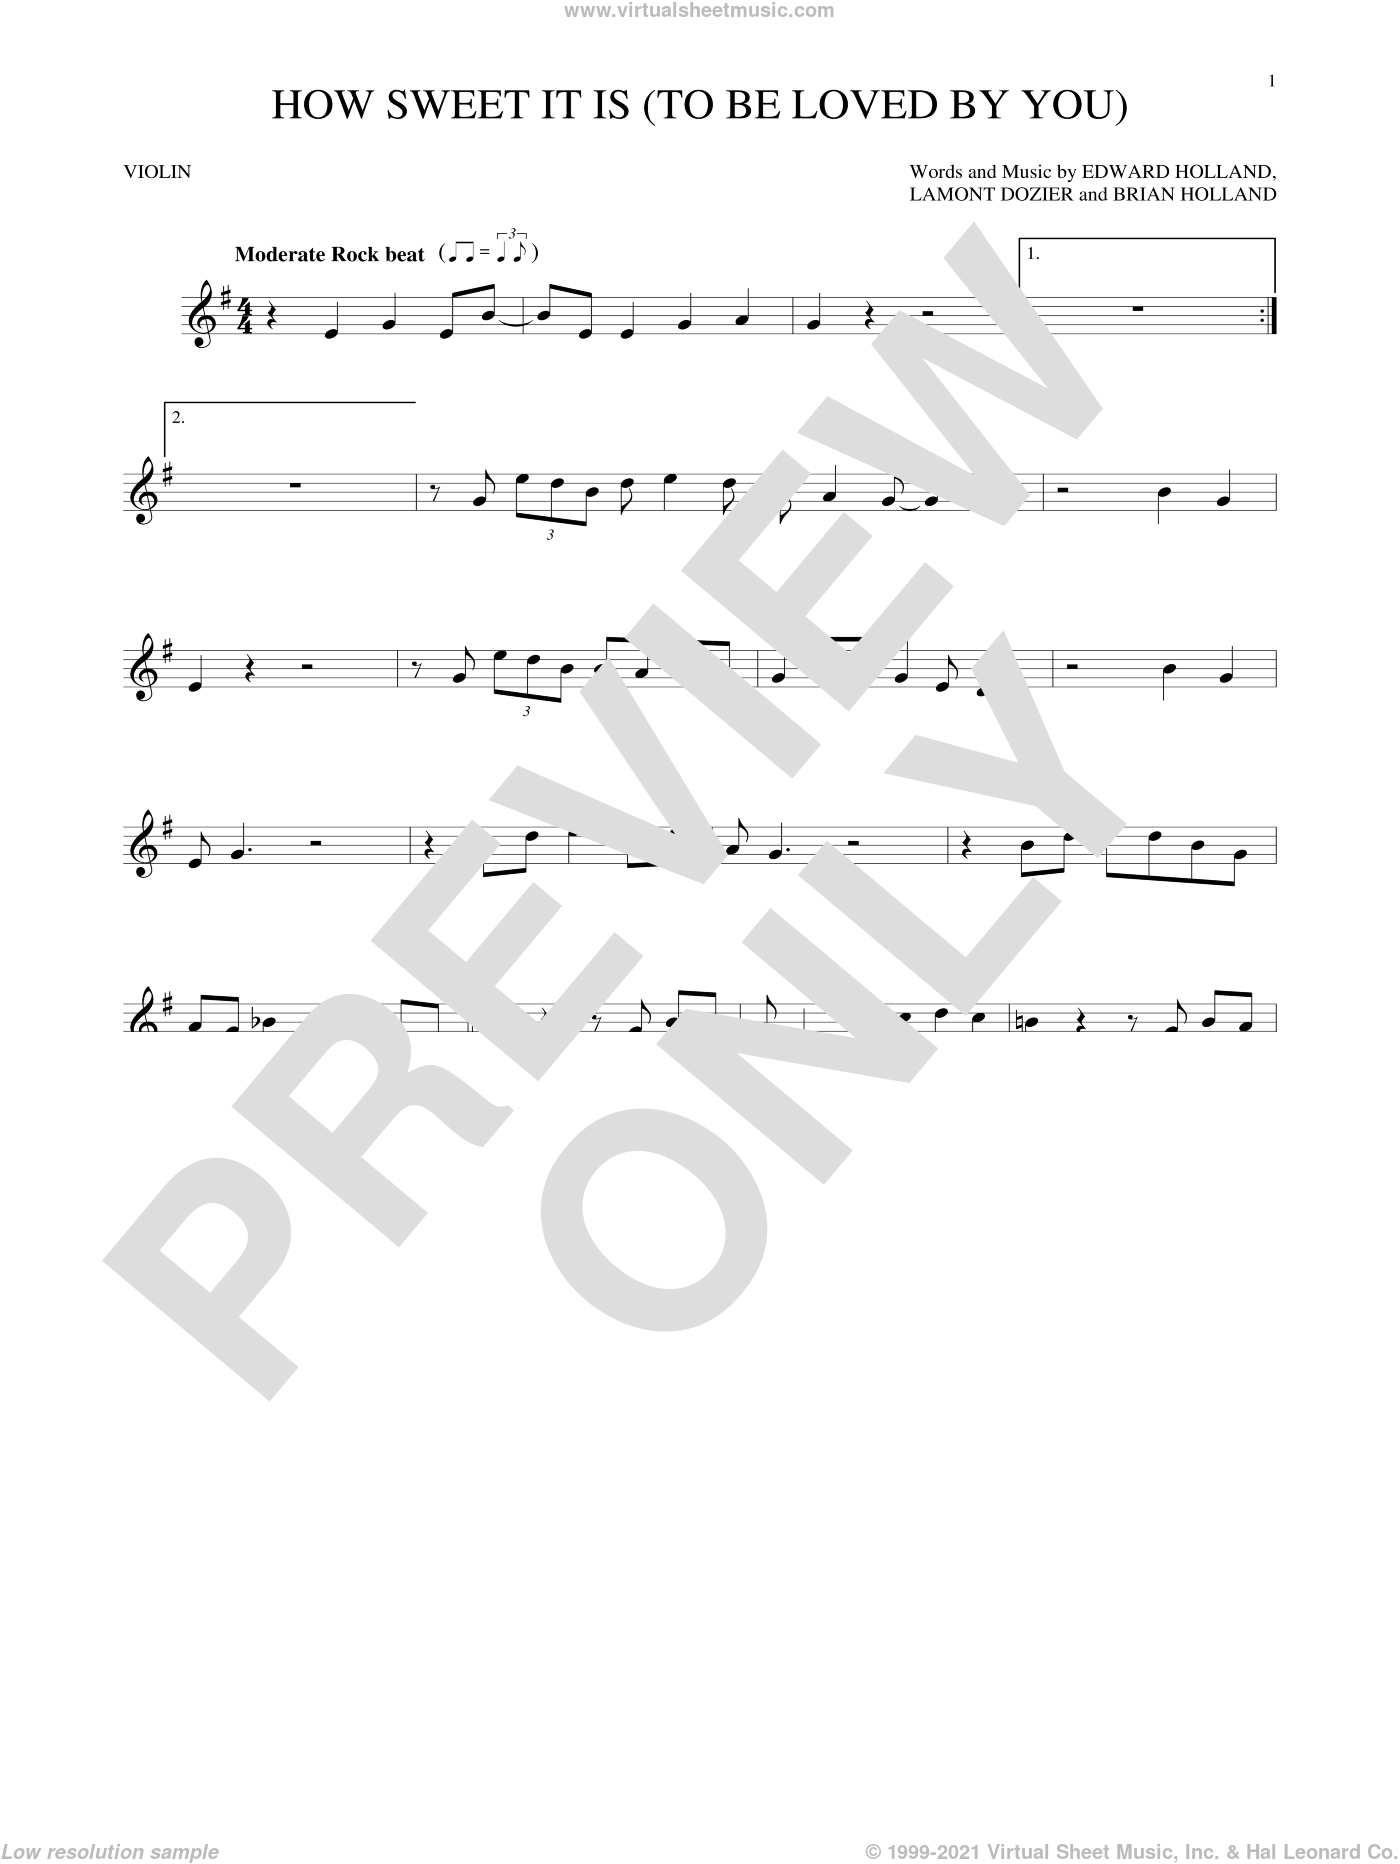 How Sweet It Is (To Be Loved By You) sheet music for violin solo by James Taylor, Marvin Gaye, Brian Holland, Eddie Holland and Lamont Dozier, intermediate skill level